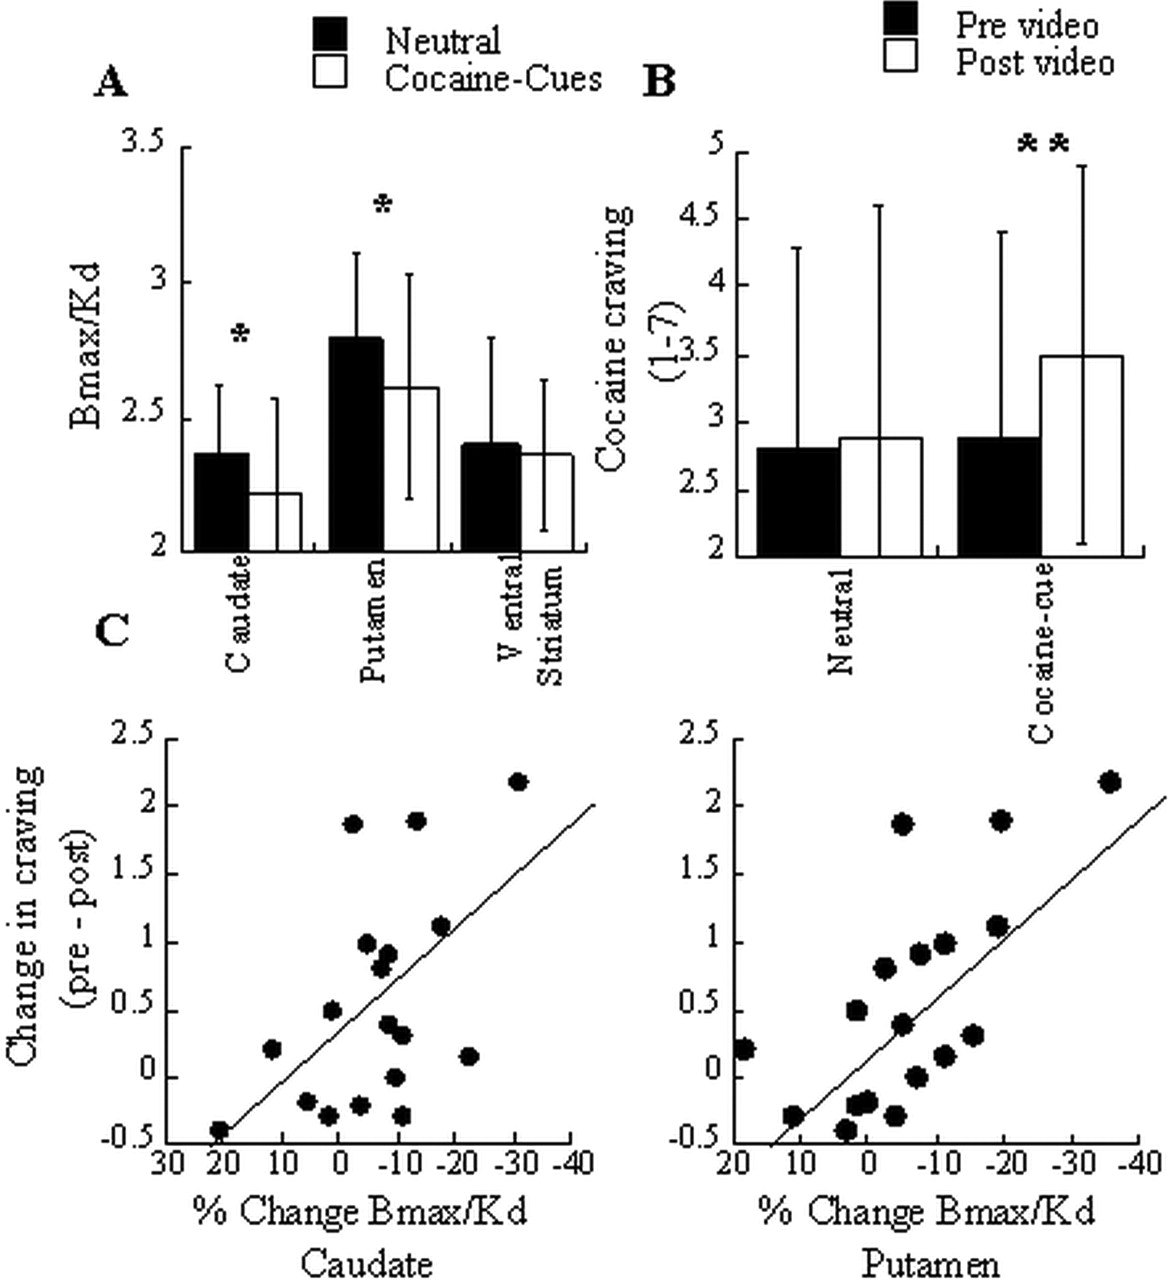 Cocaine Cues and Dopamine in Dorsal Striatum: Mechanism of Craving